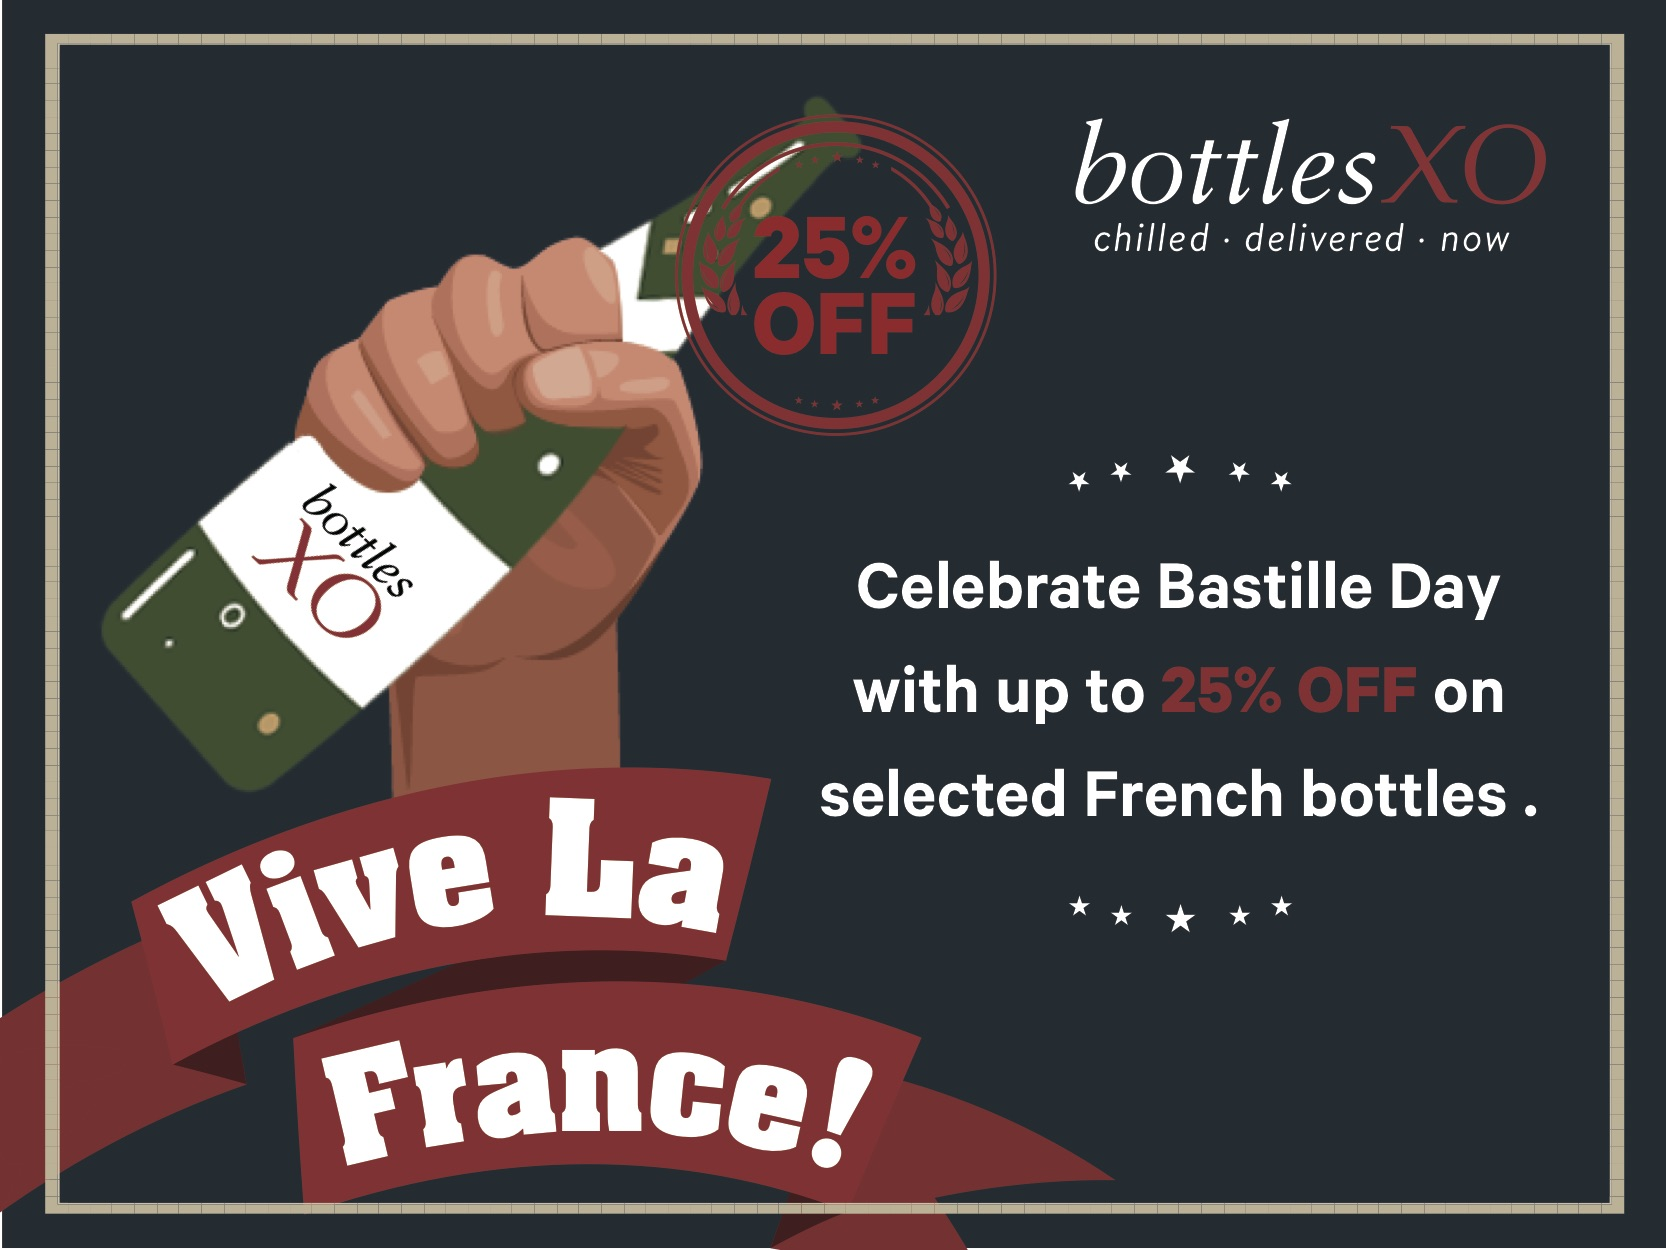 Hong Kong | Celebrate Bastille Day with Up to 25% OFF Selected French Bottles